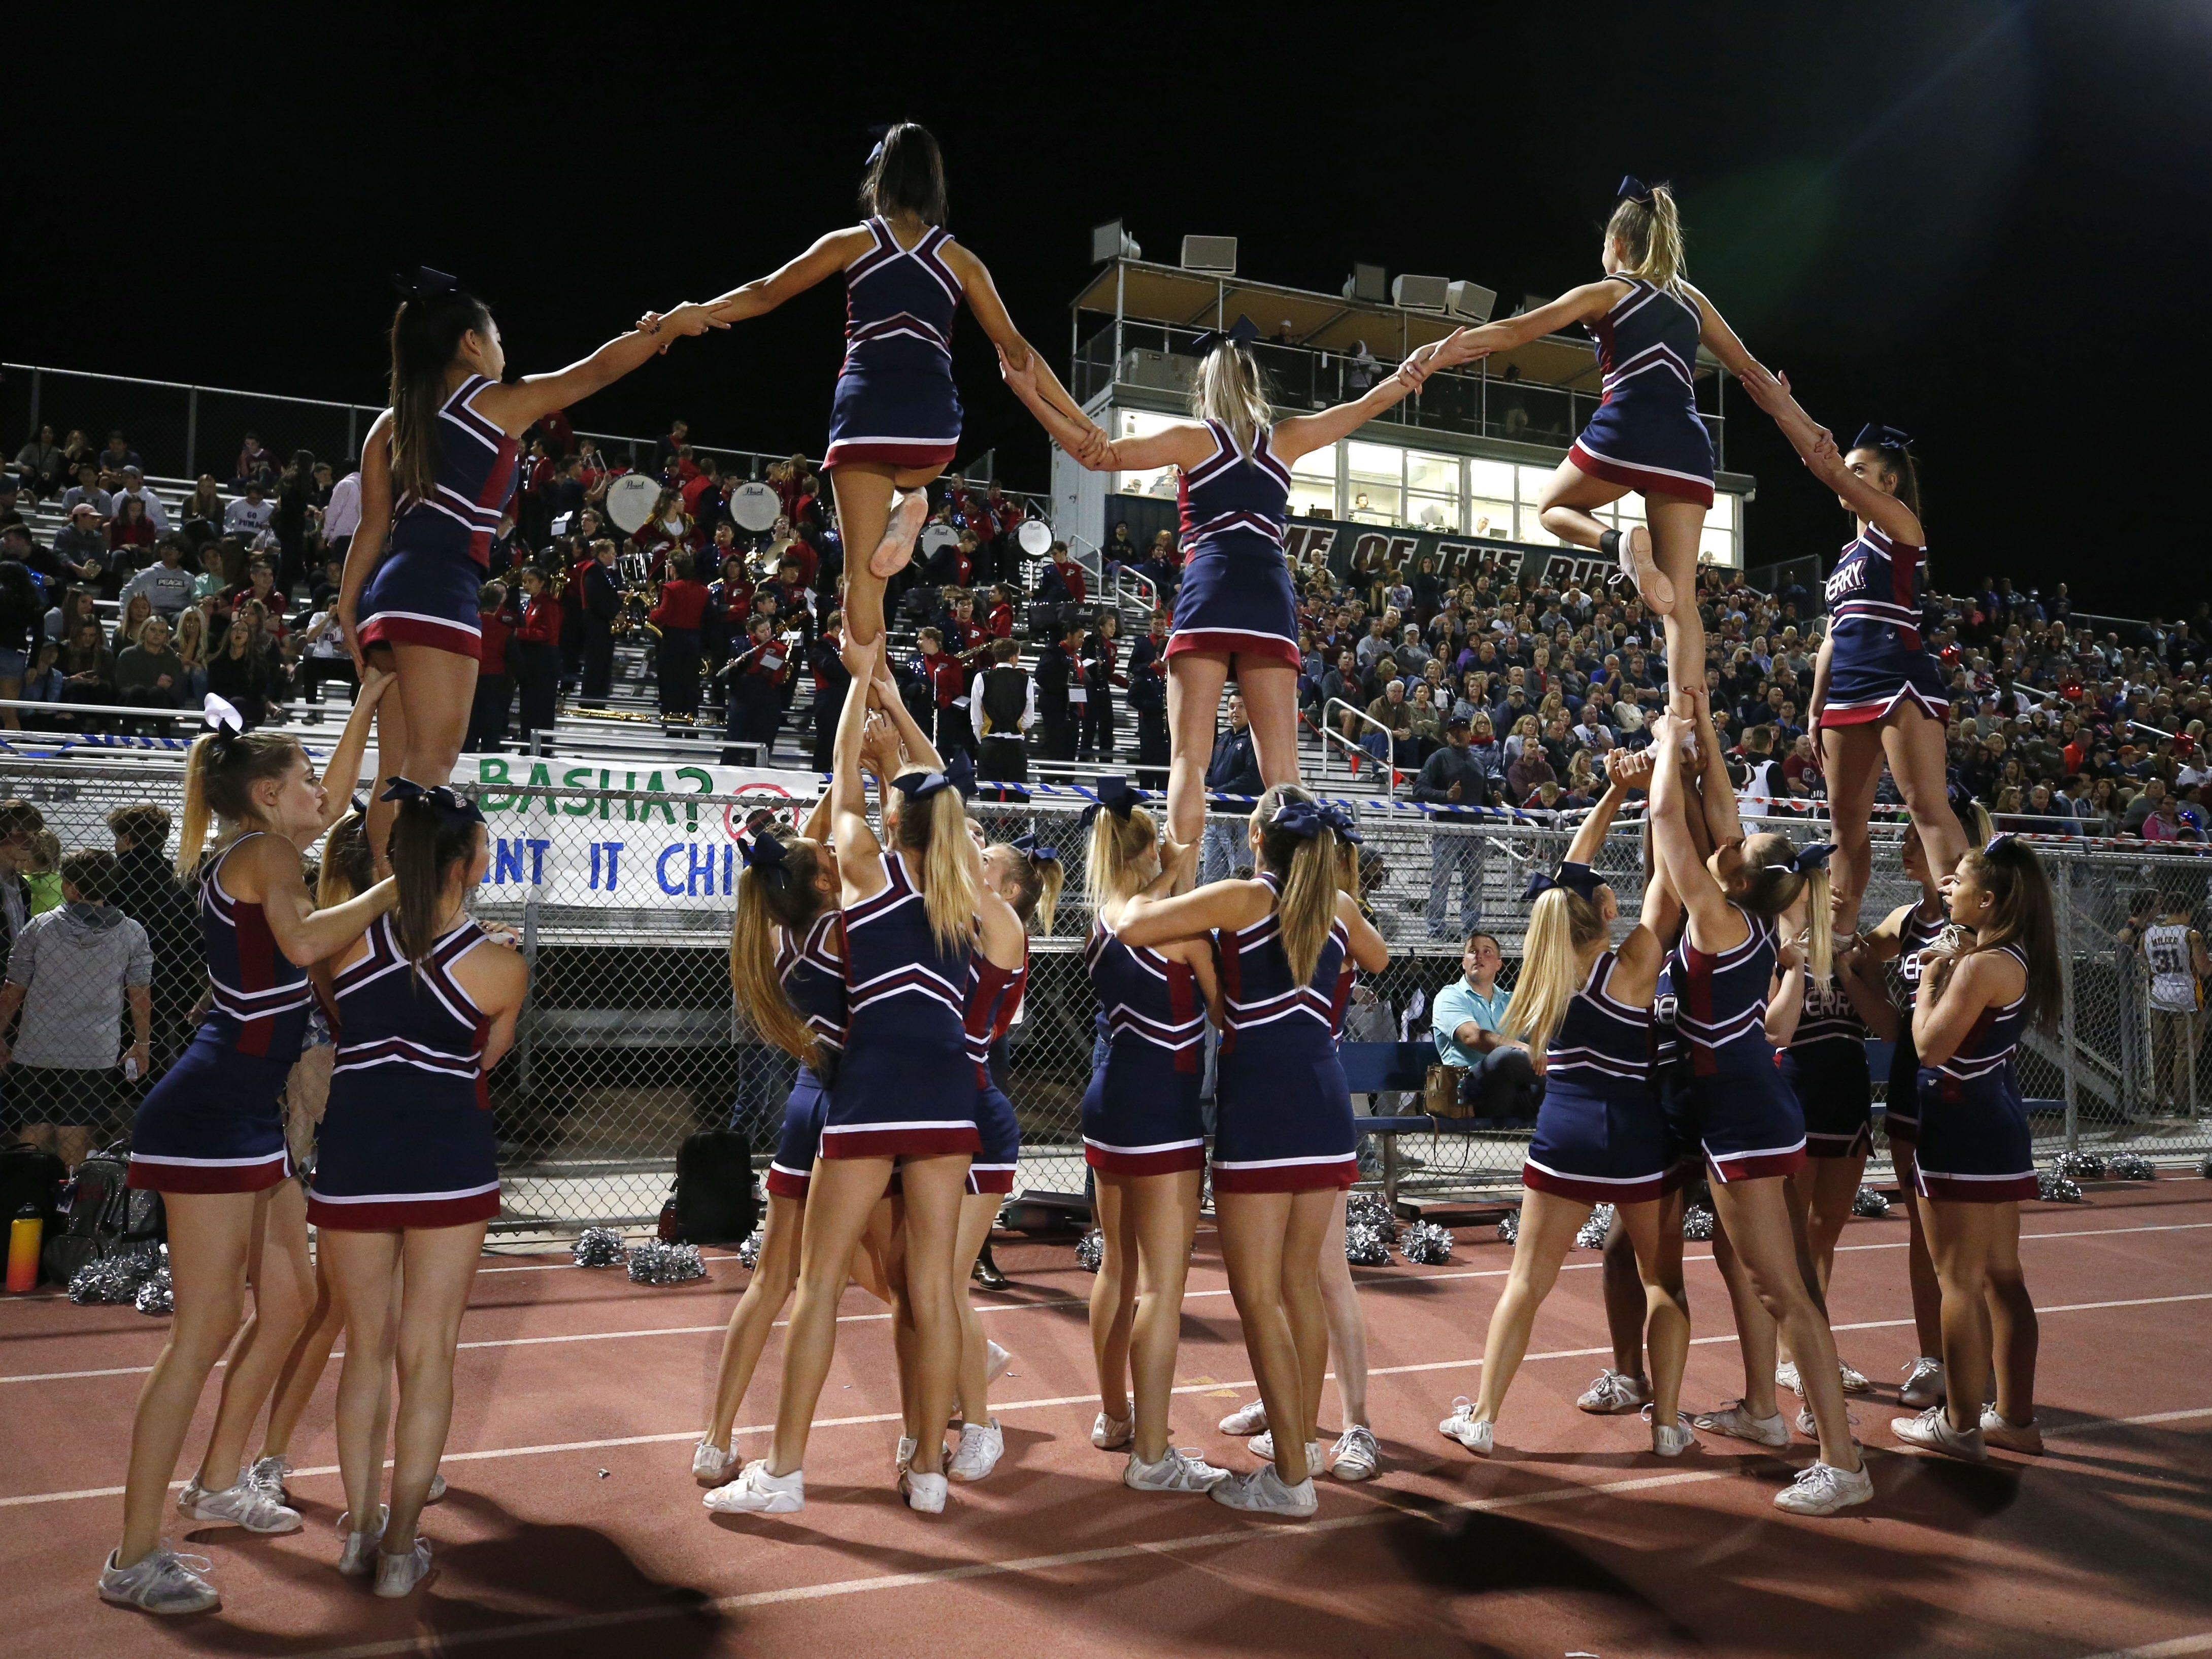 Perry cheerleaders perform a stunt during a football game against Basha at Perry High School on Nov. 2. #azhsfb